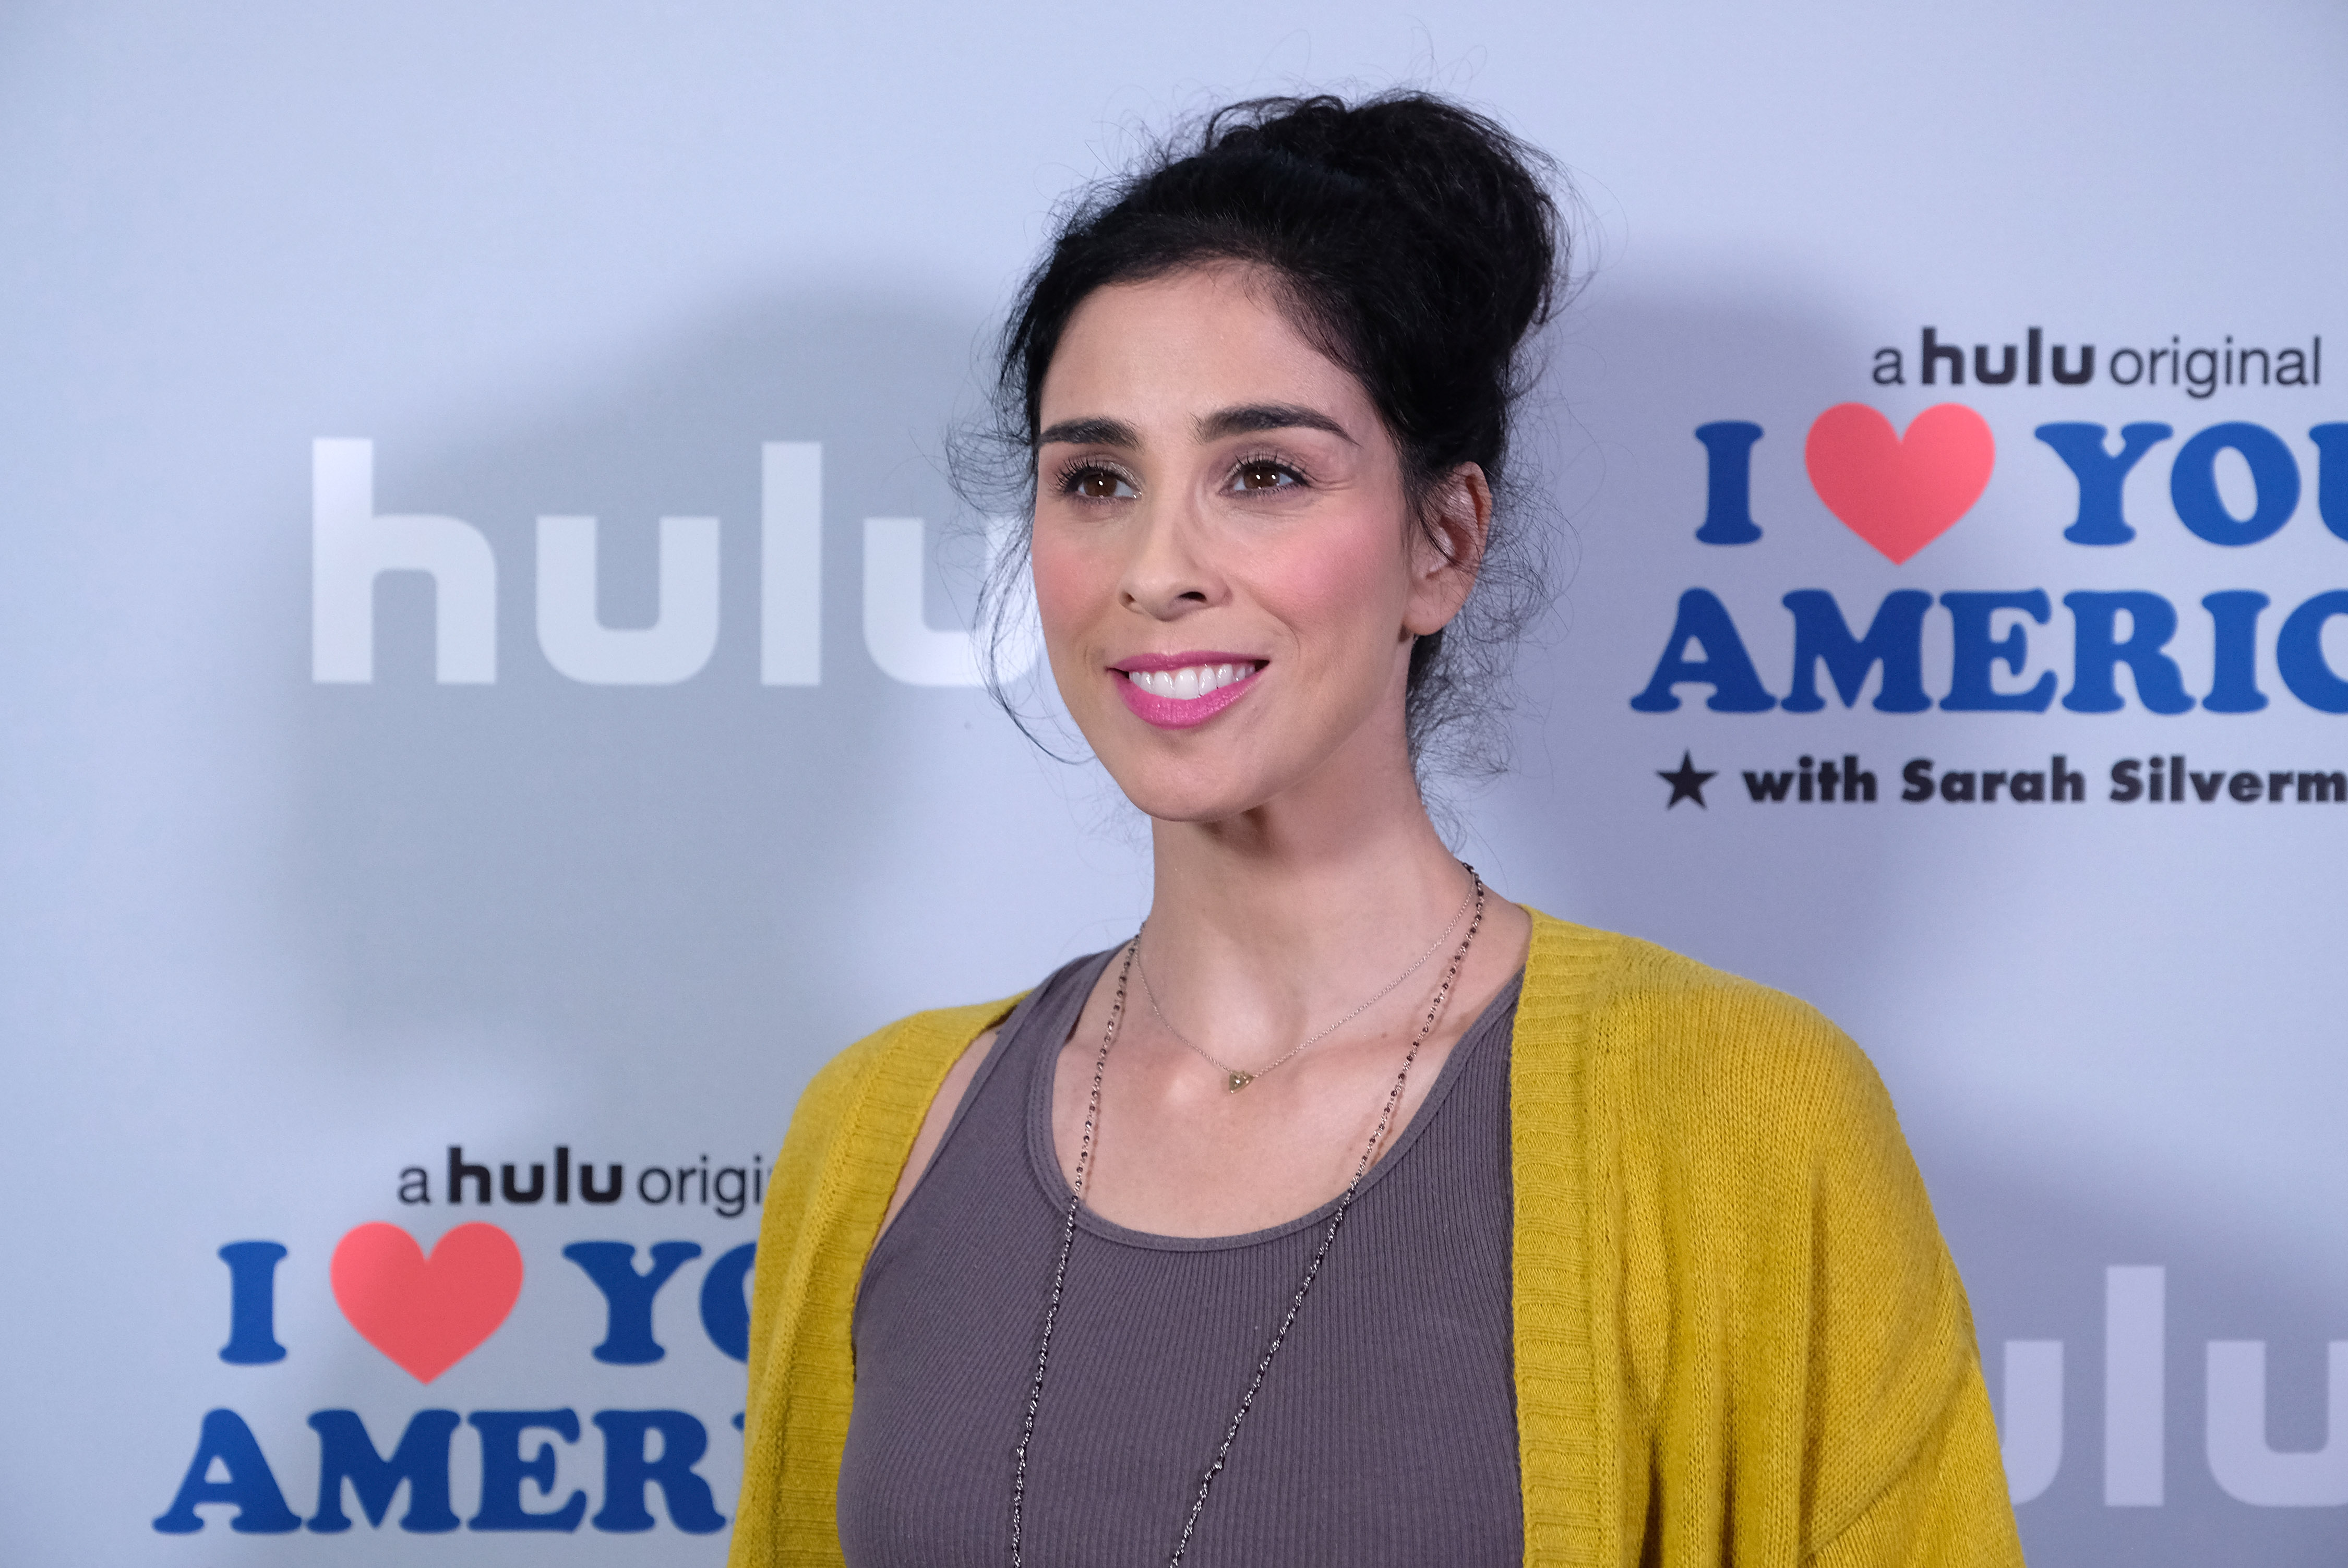 Actress/executive producer Sarah Silverman attends a photo op for Hulu's  I Love You America  with Sarah Silverman at Chateau Marmont on Oct. 11, 2017 in Los Angeles.